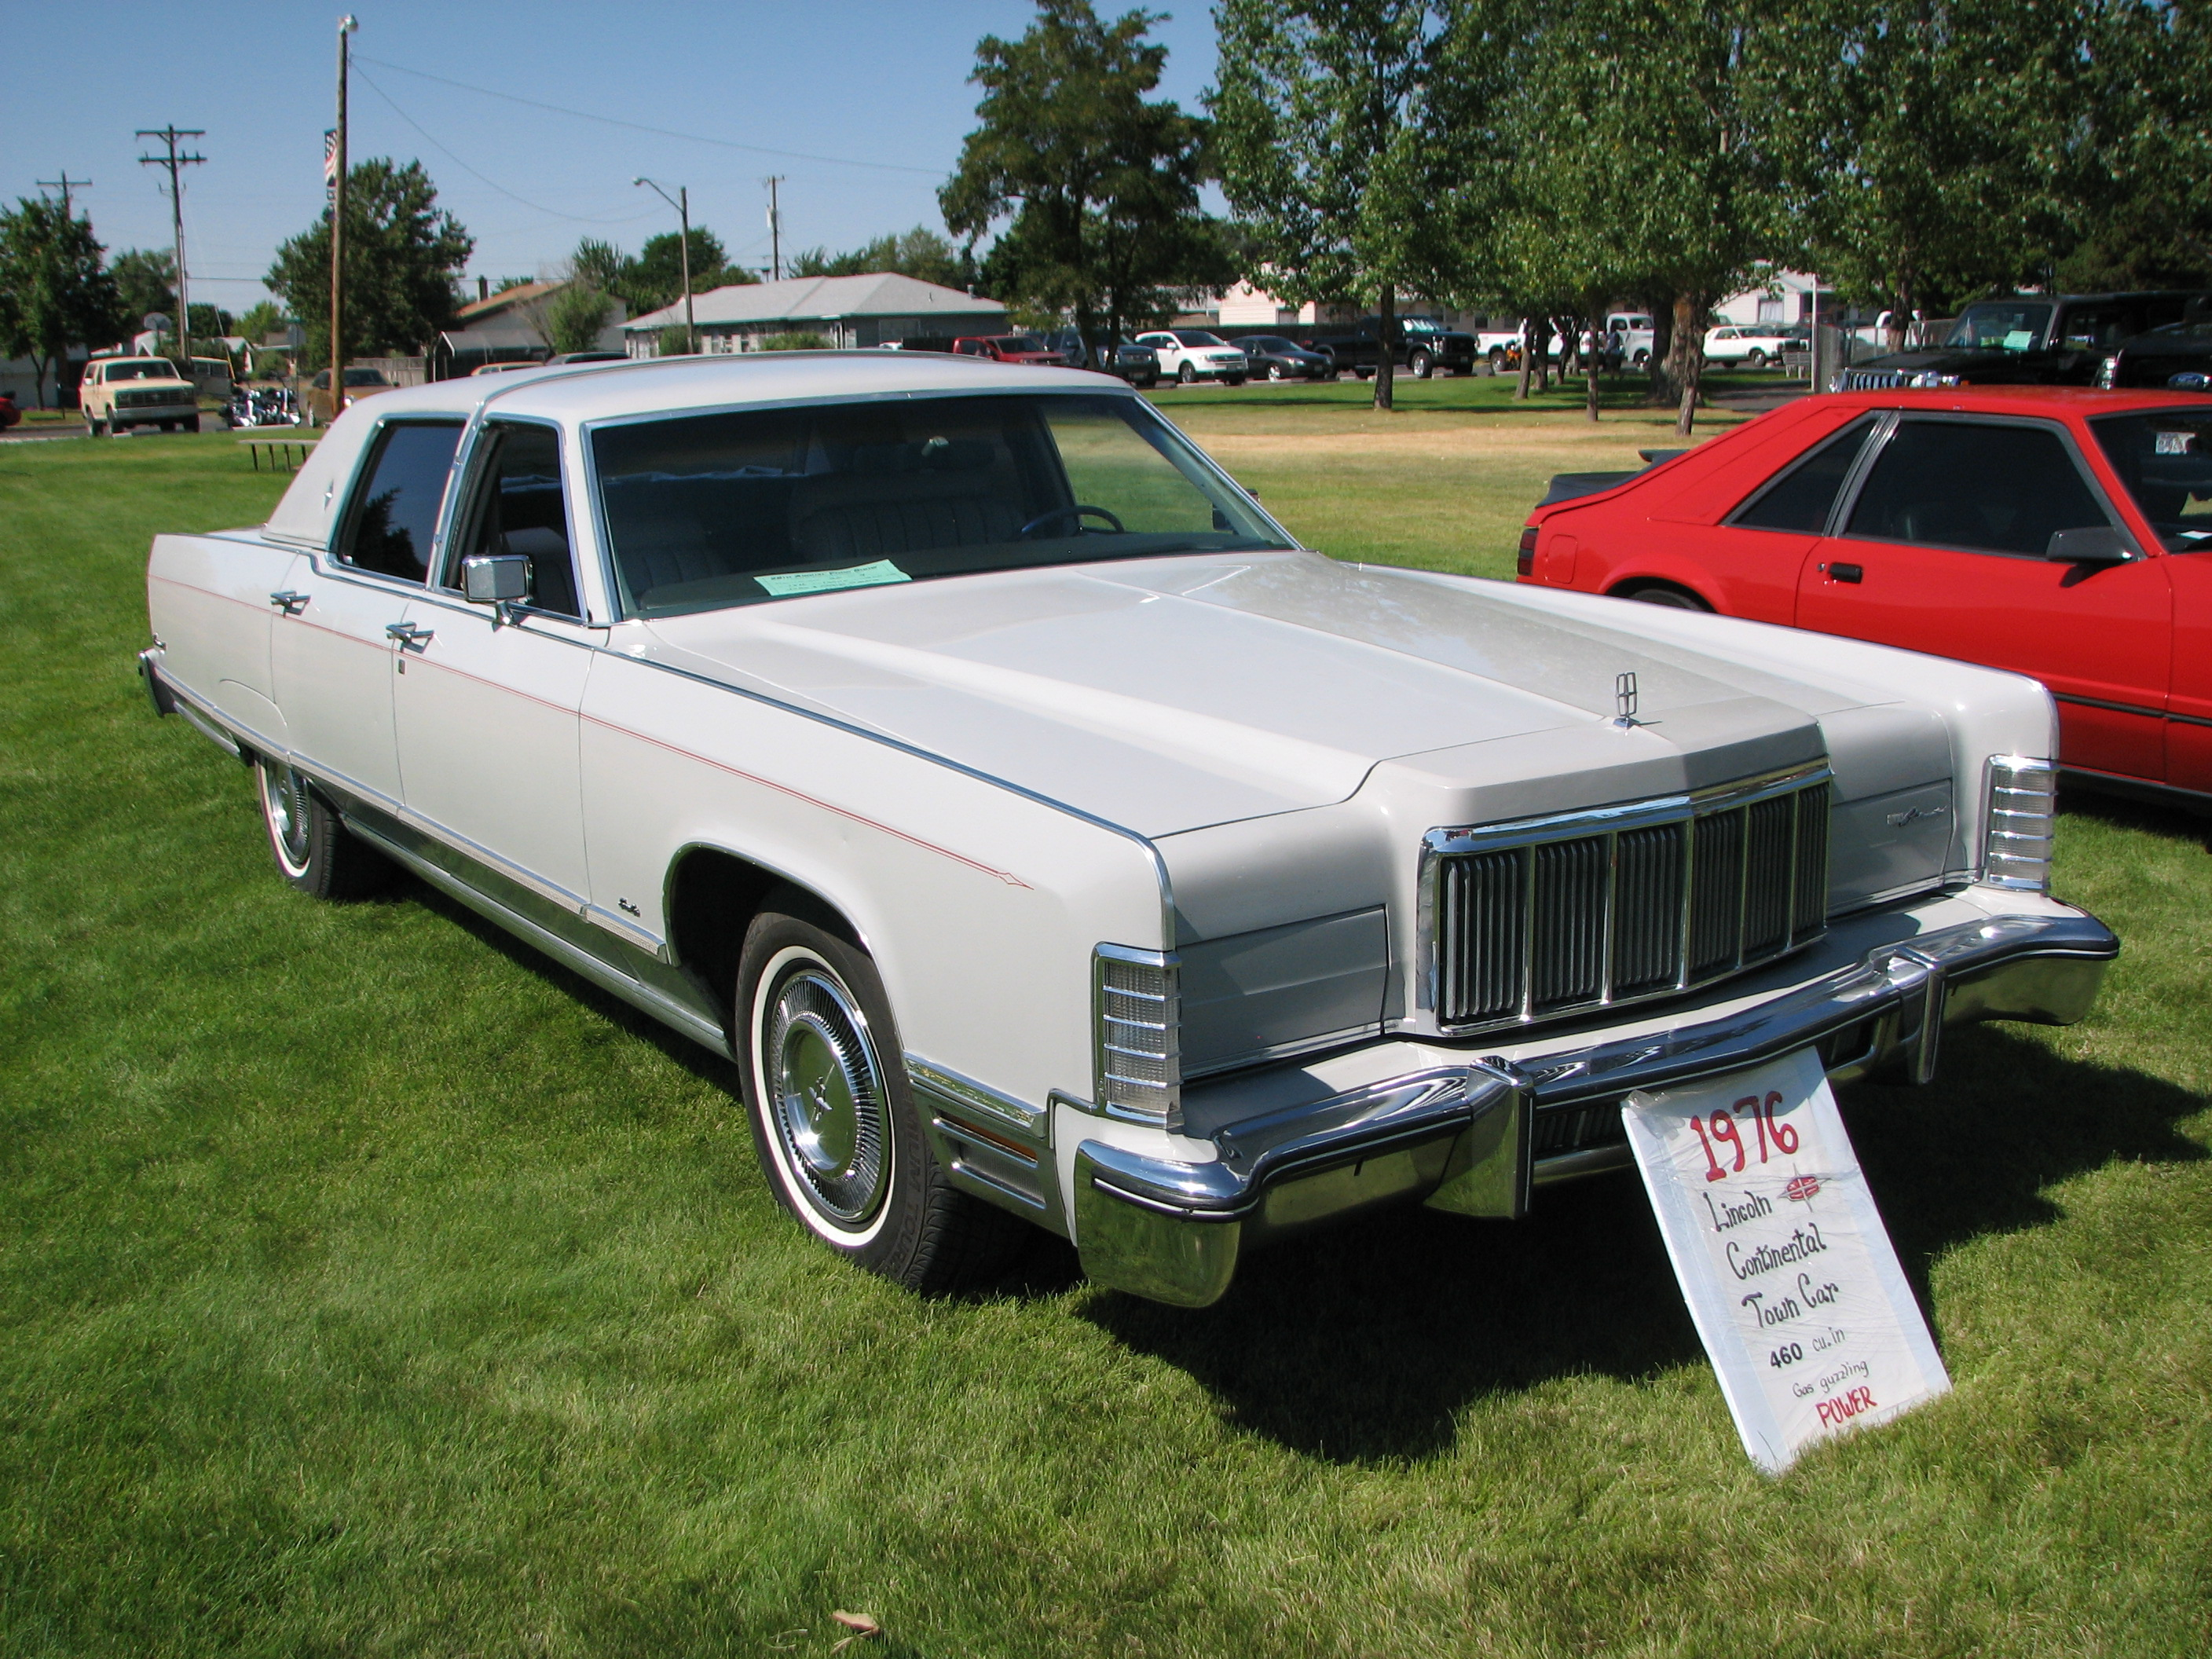 1976 Lincoln Town Car Fullsizeford